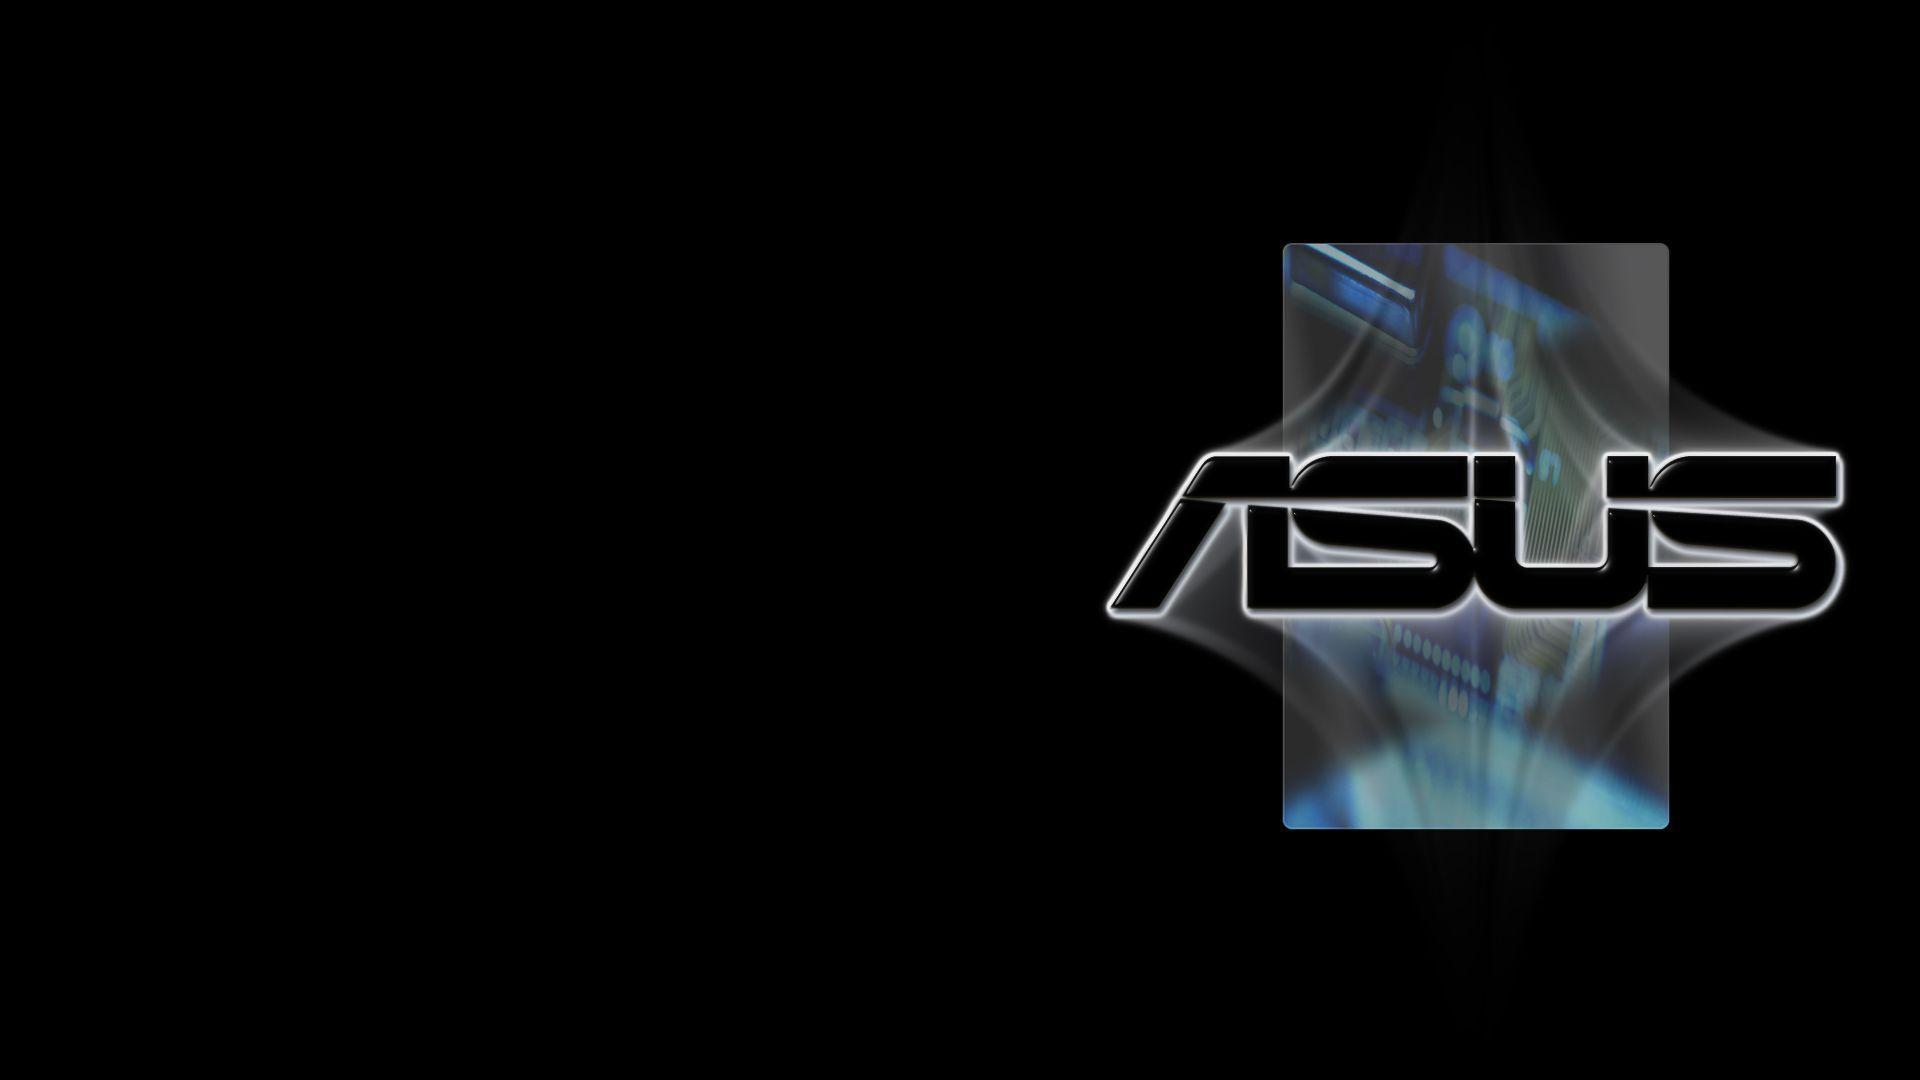 ASUS HD Set Windows Wallpapers HD Wallpapers